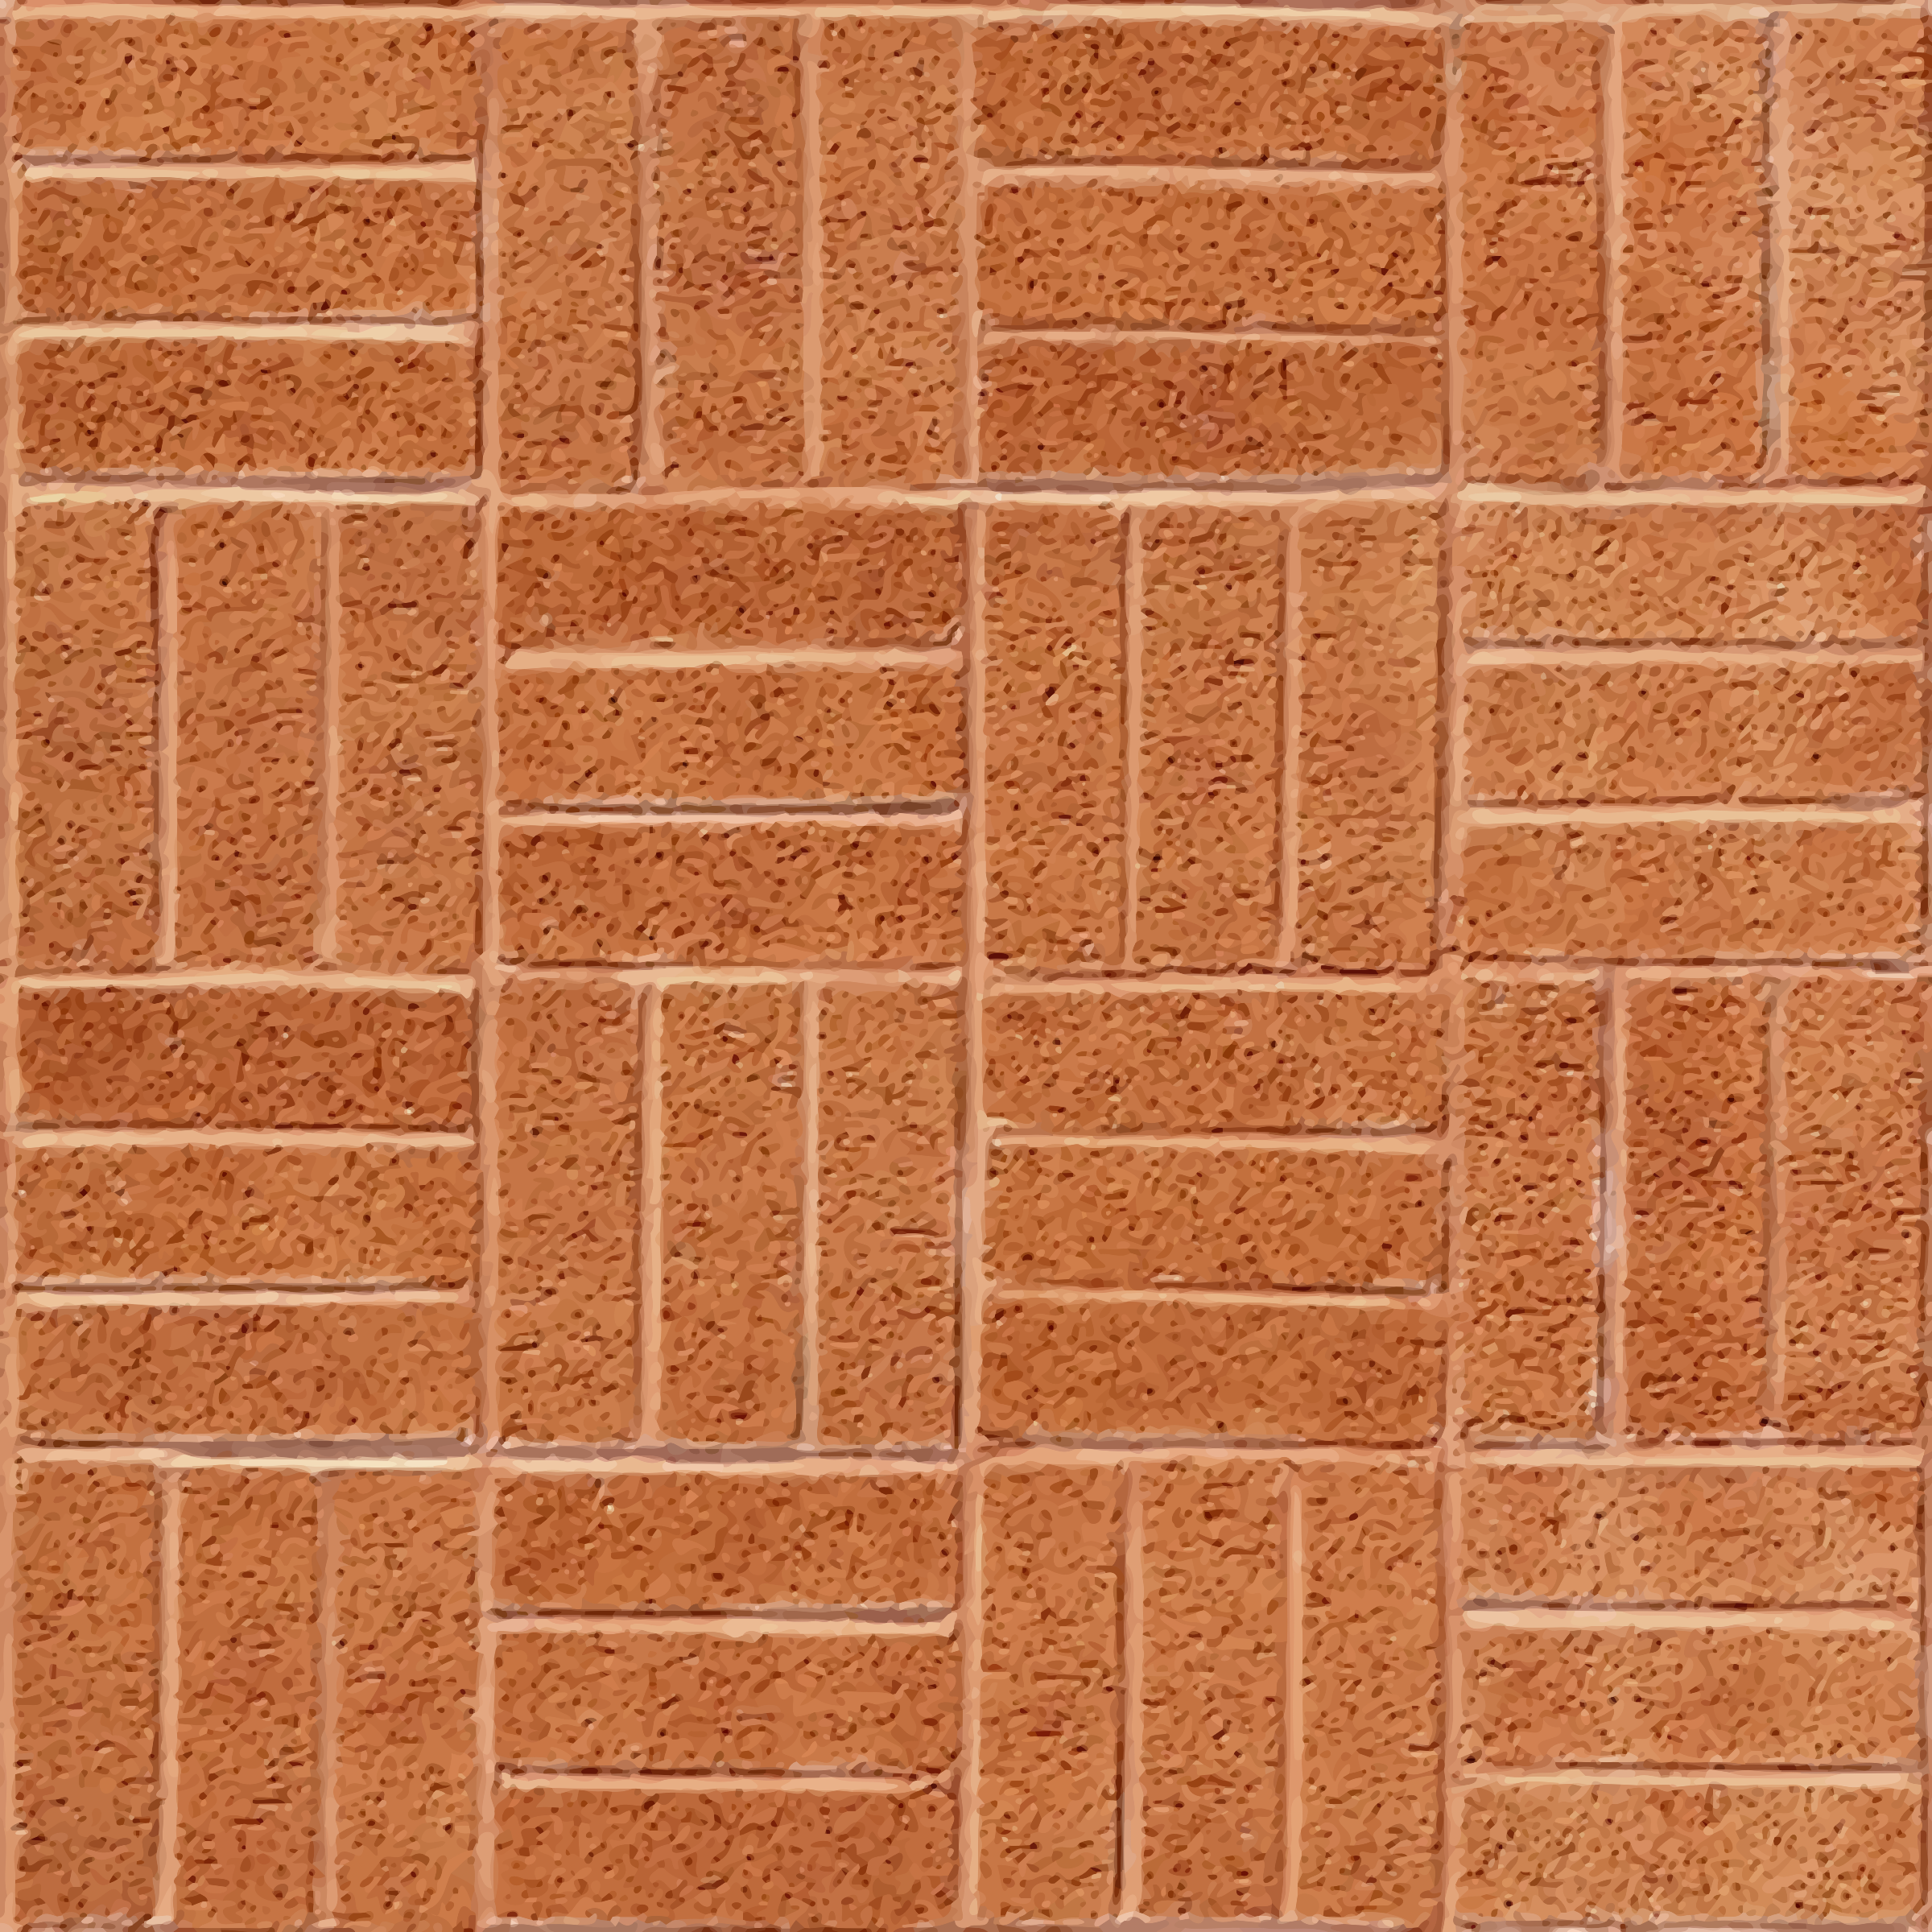 Brick pattern by Firkin